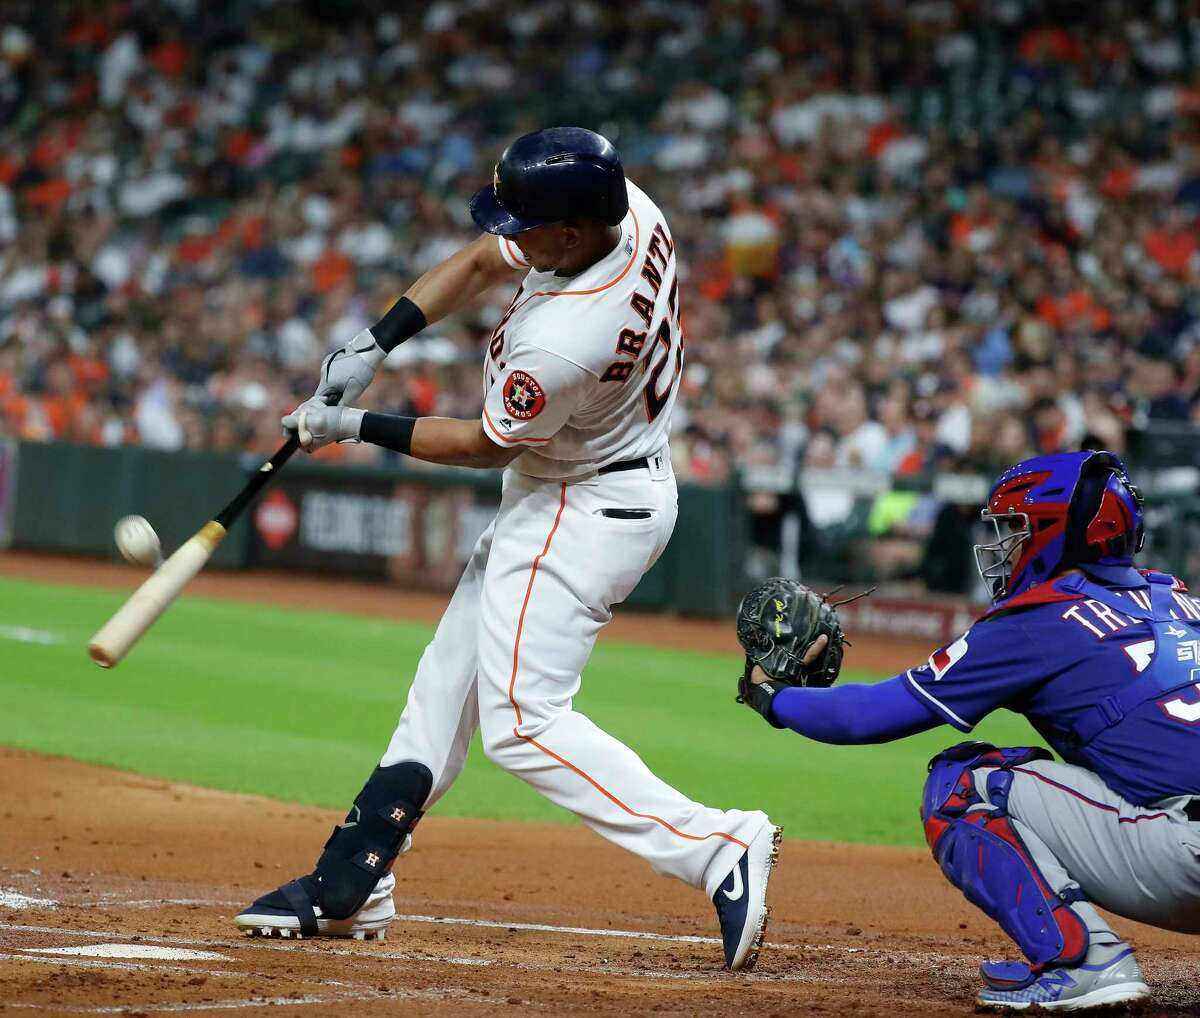 Houston Astros Michael Brantley (23) fouls off a ball during his at bat in the first inning of an MLB baseball game at Minute Maid Park, Tuesday, Sept. 17, 2019, in Houston.